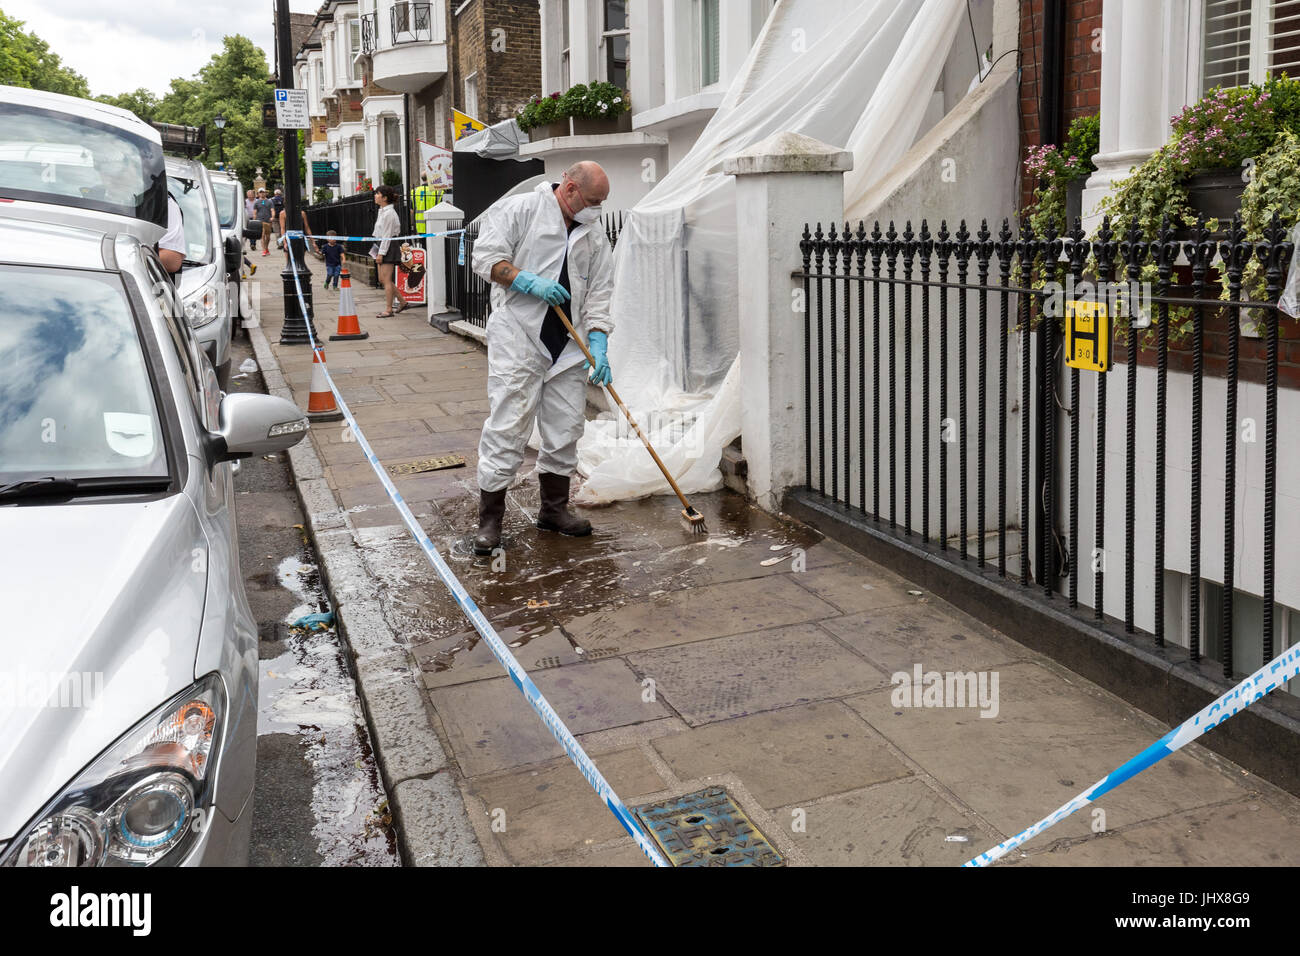 London, UK. 16th July, 2017. Greenwich murder investigation. Police forensic teams clean up after investigations - Stock Image